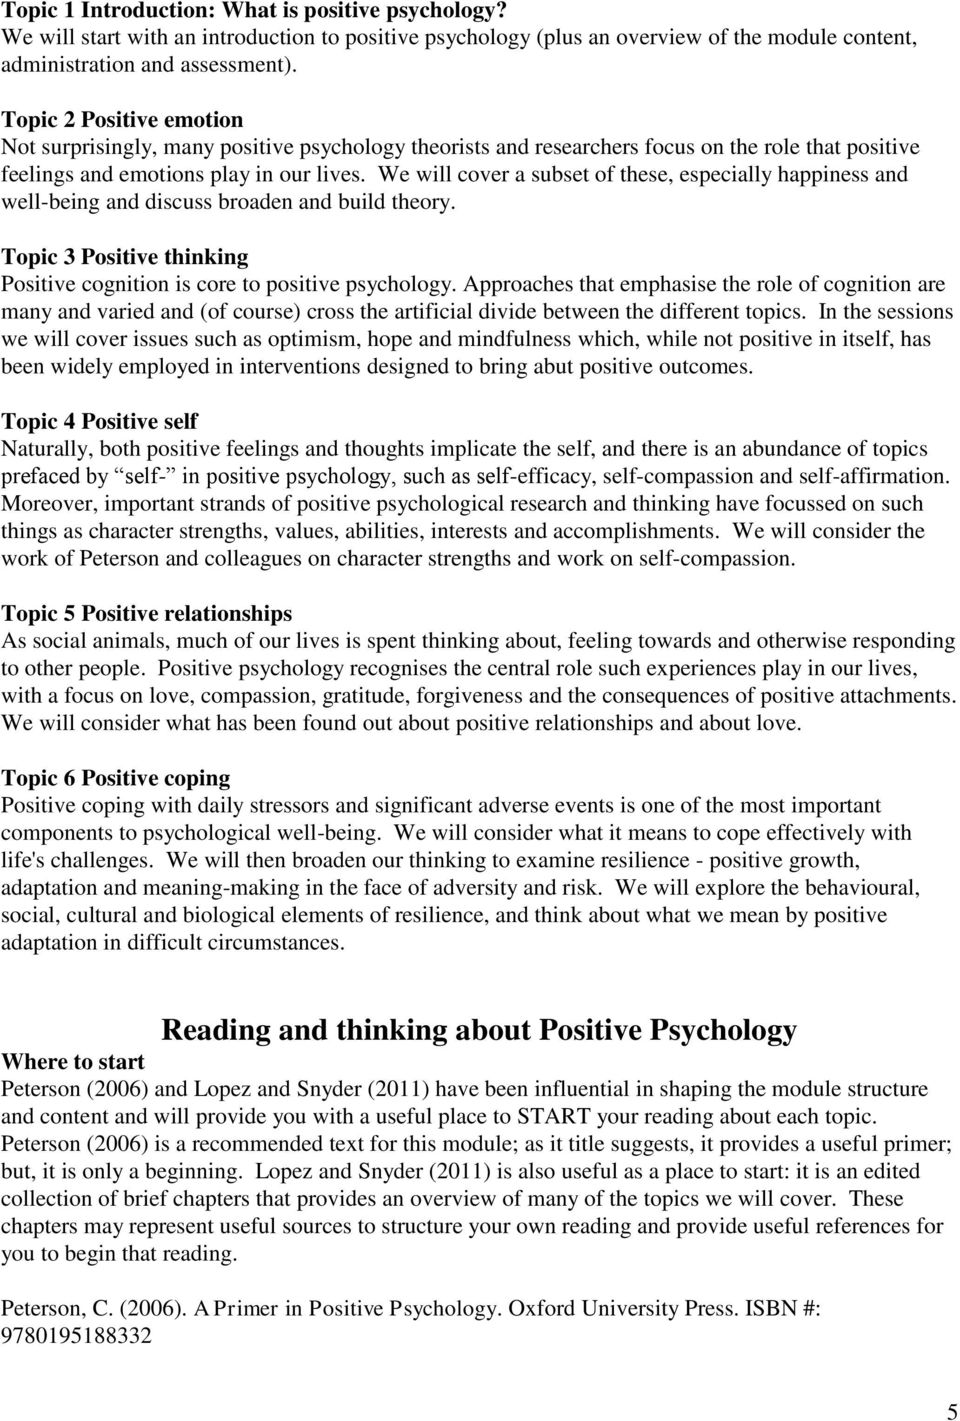 We will cover a subset of these, especially happiness and well-being and discuss broaden and build theory. Topic 3 Positive thinking Positive cognition is core to positive psychology.